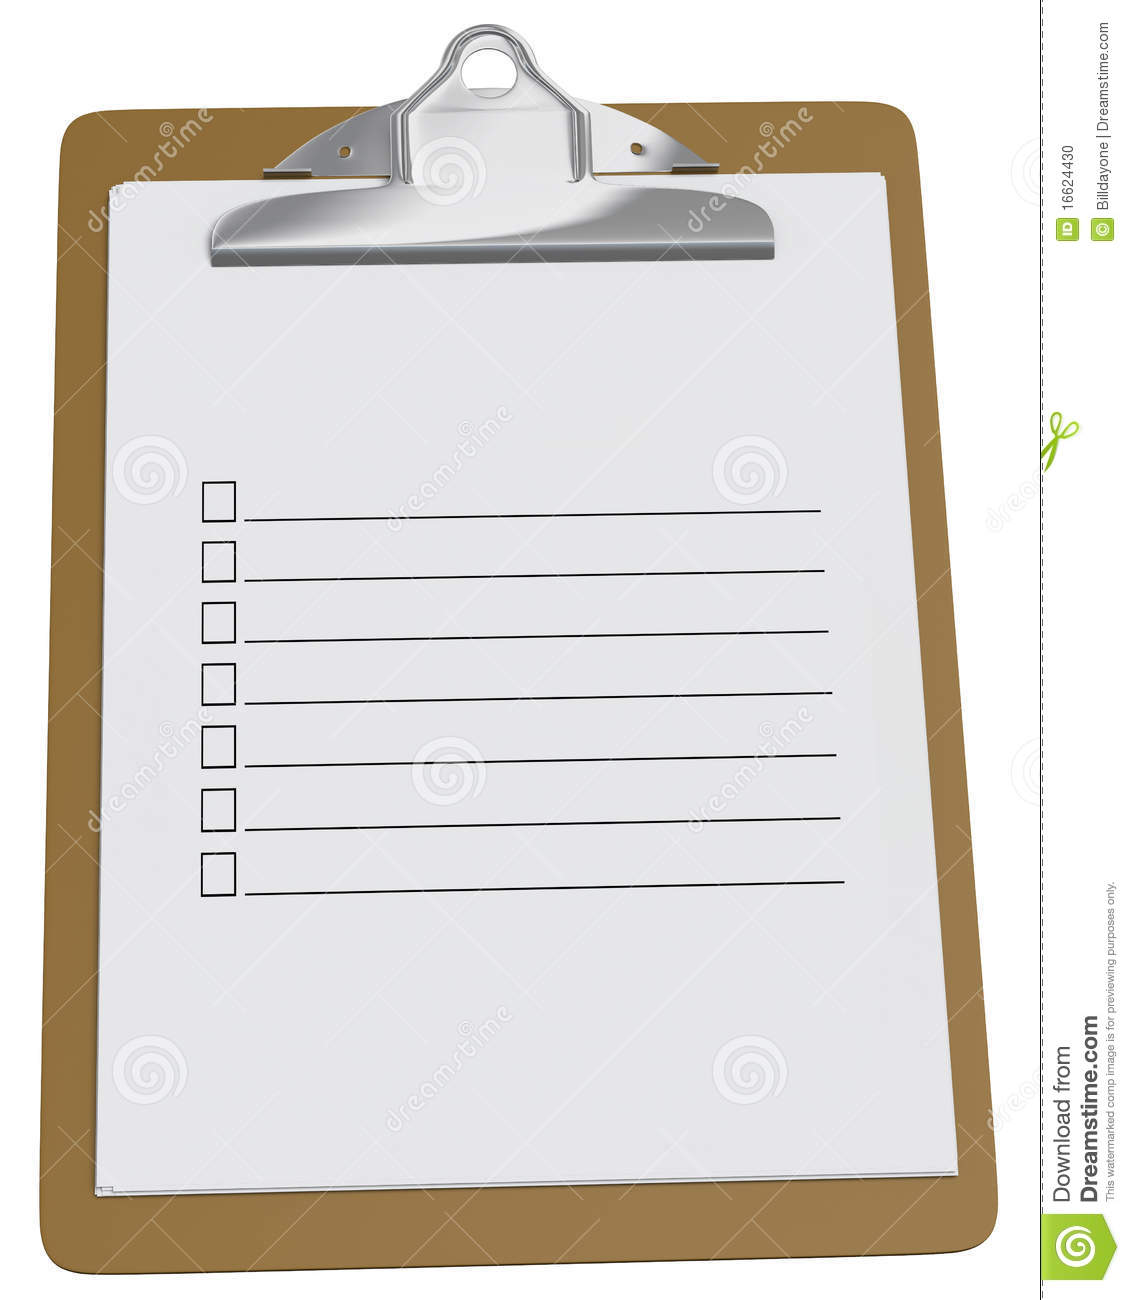 More similar stock images of ` Clipboard with blank checklist `